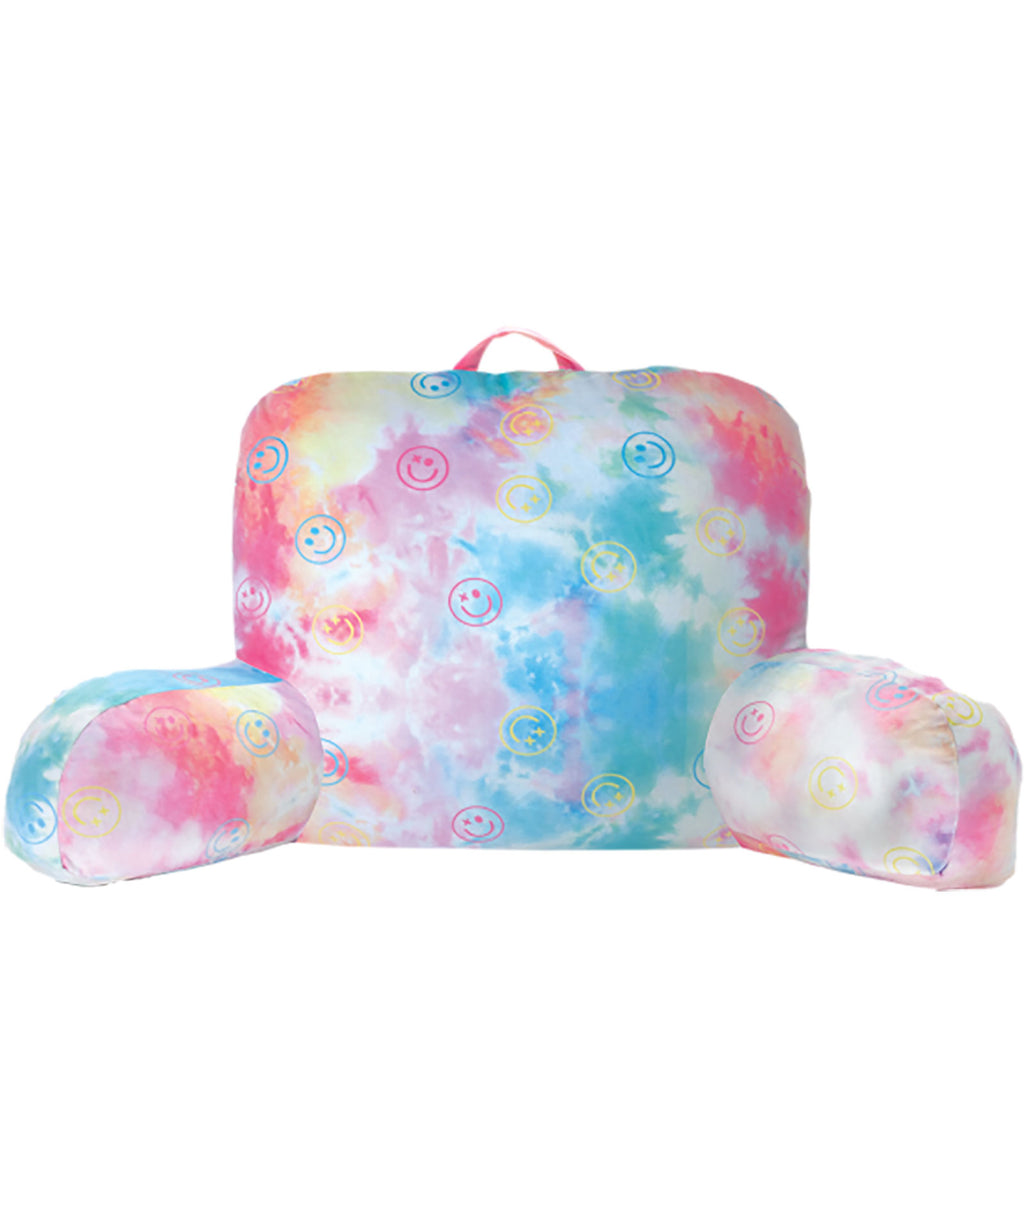 iScream Cotton Candy Lounge Pillow